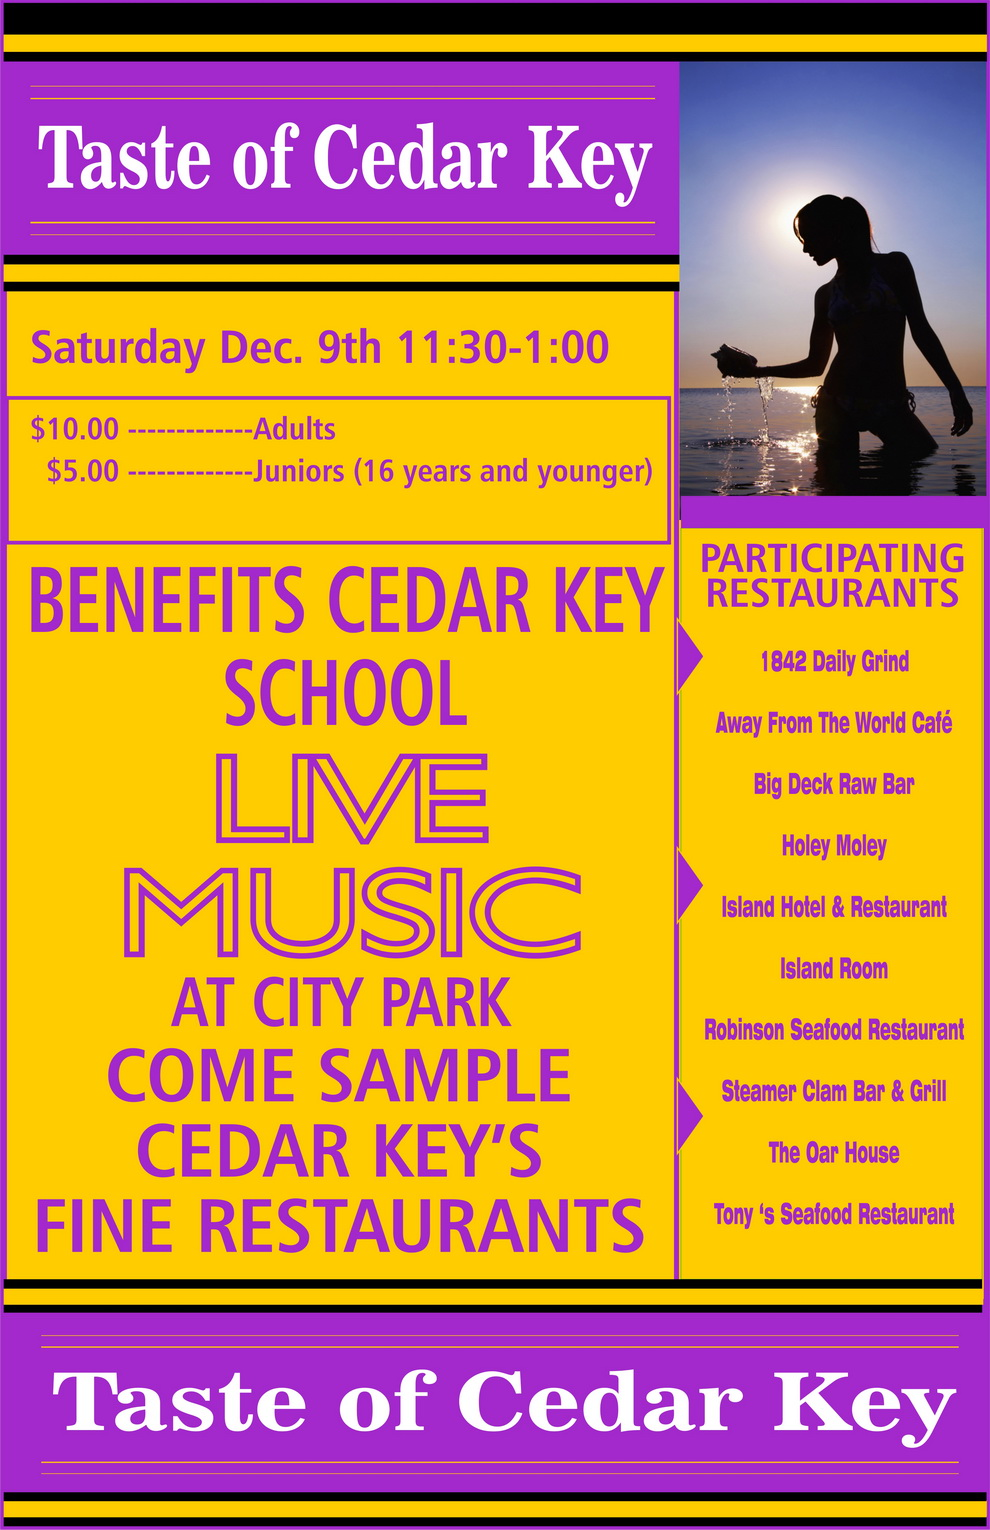 DEC R COC taste of cedar key flyer